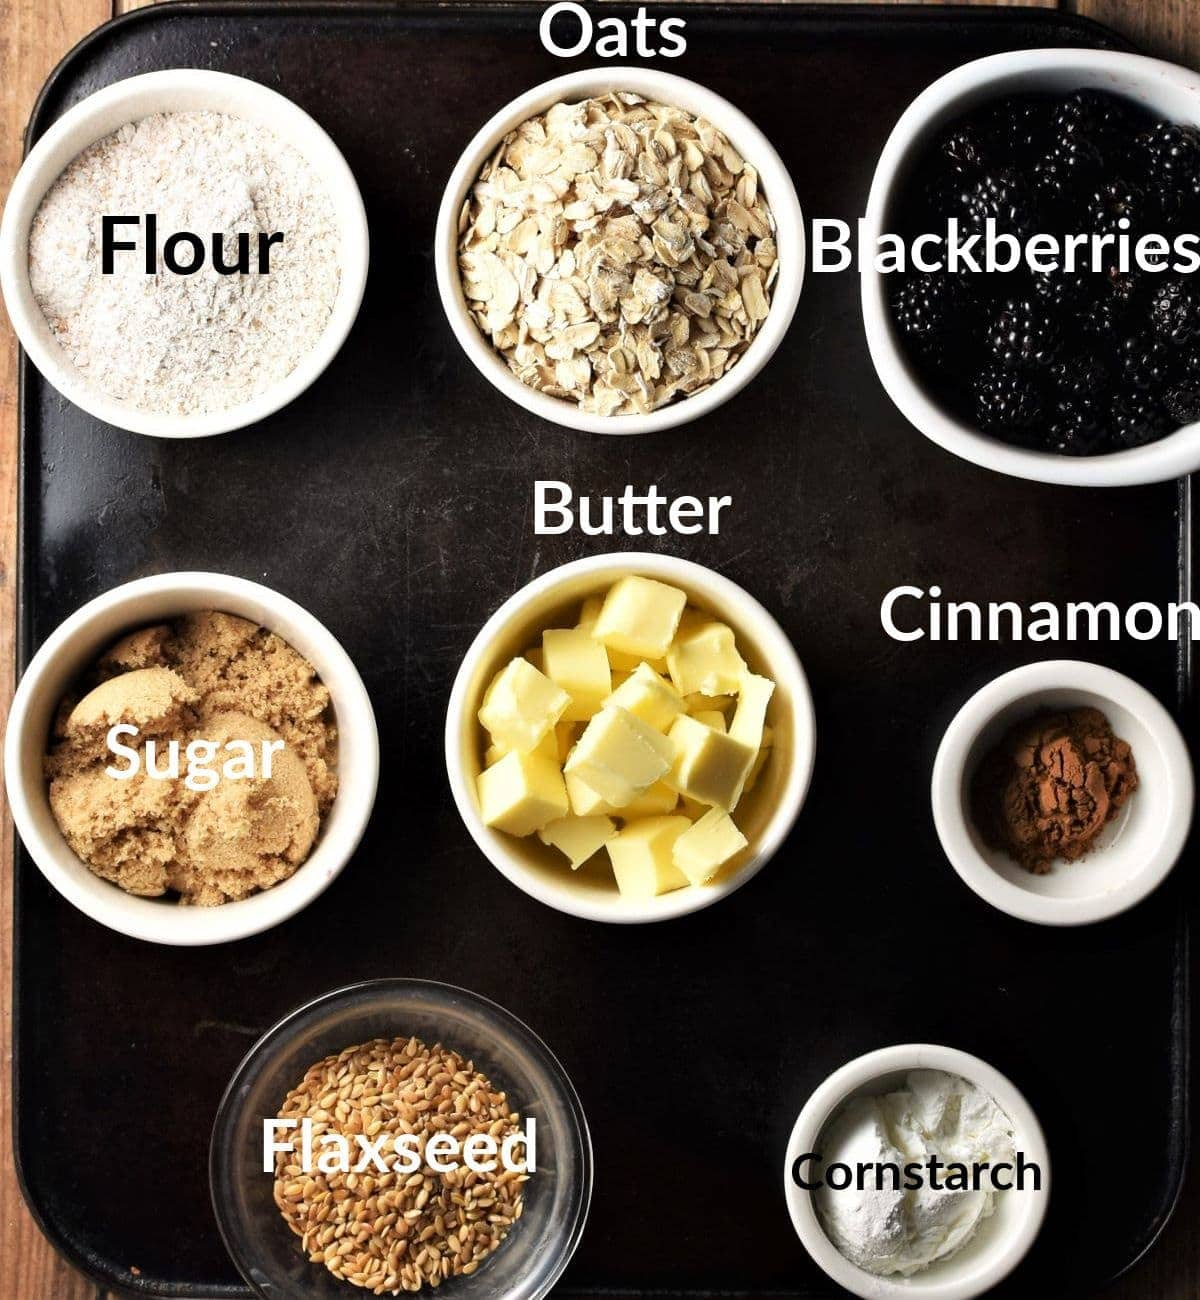 Blackberry crumble ingredients in individual dishes.